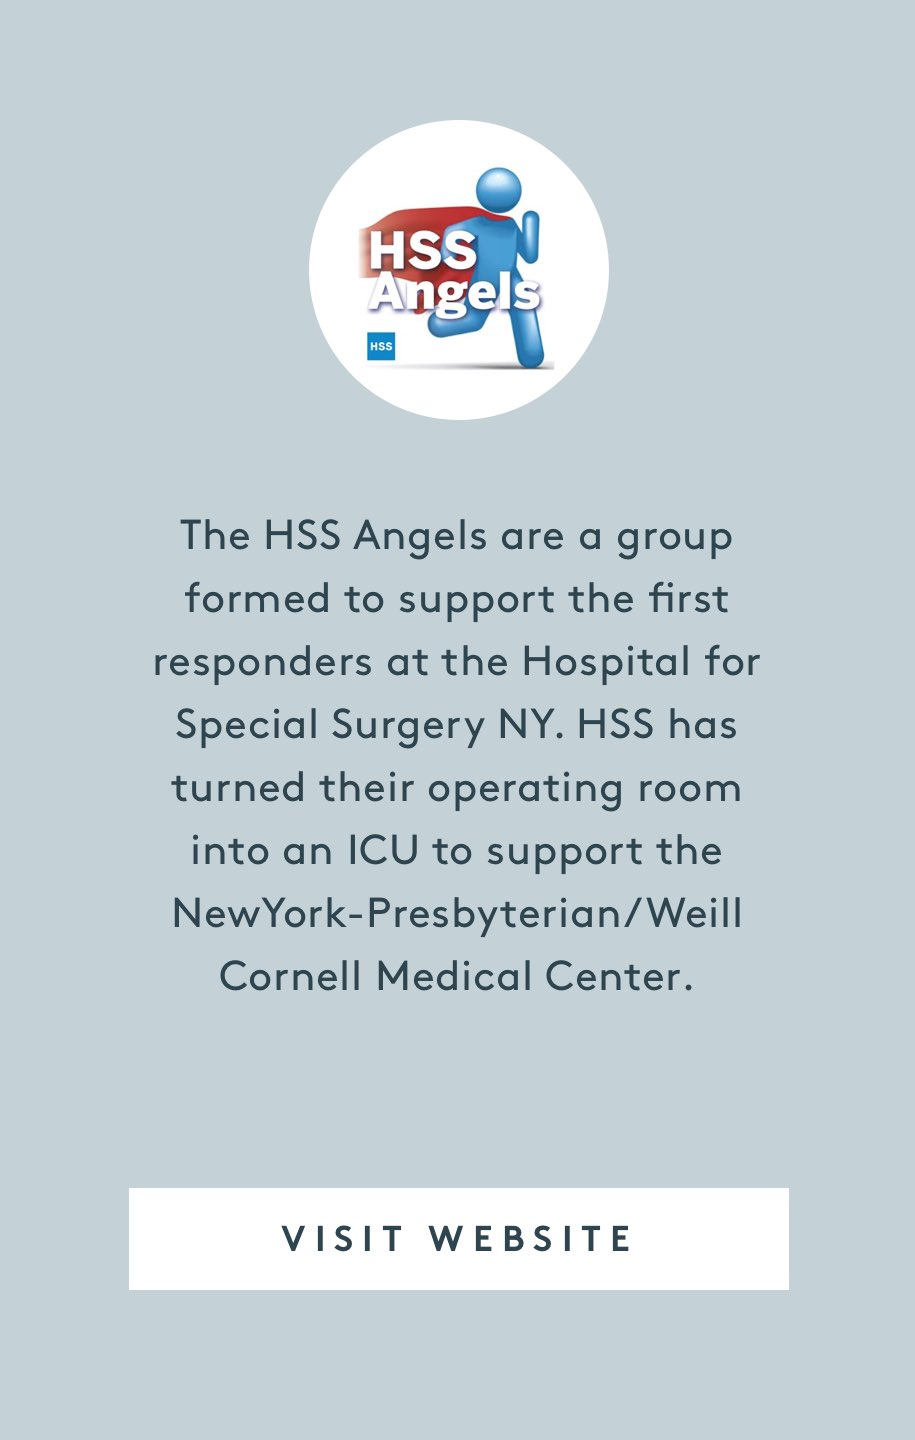 Hospital for Special Surgery - HSS Angels